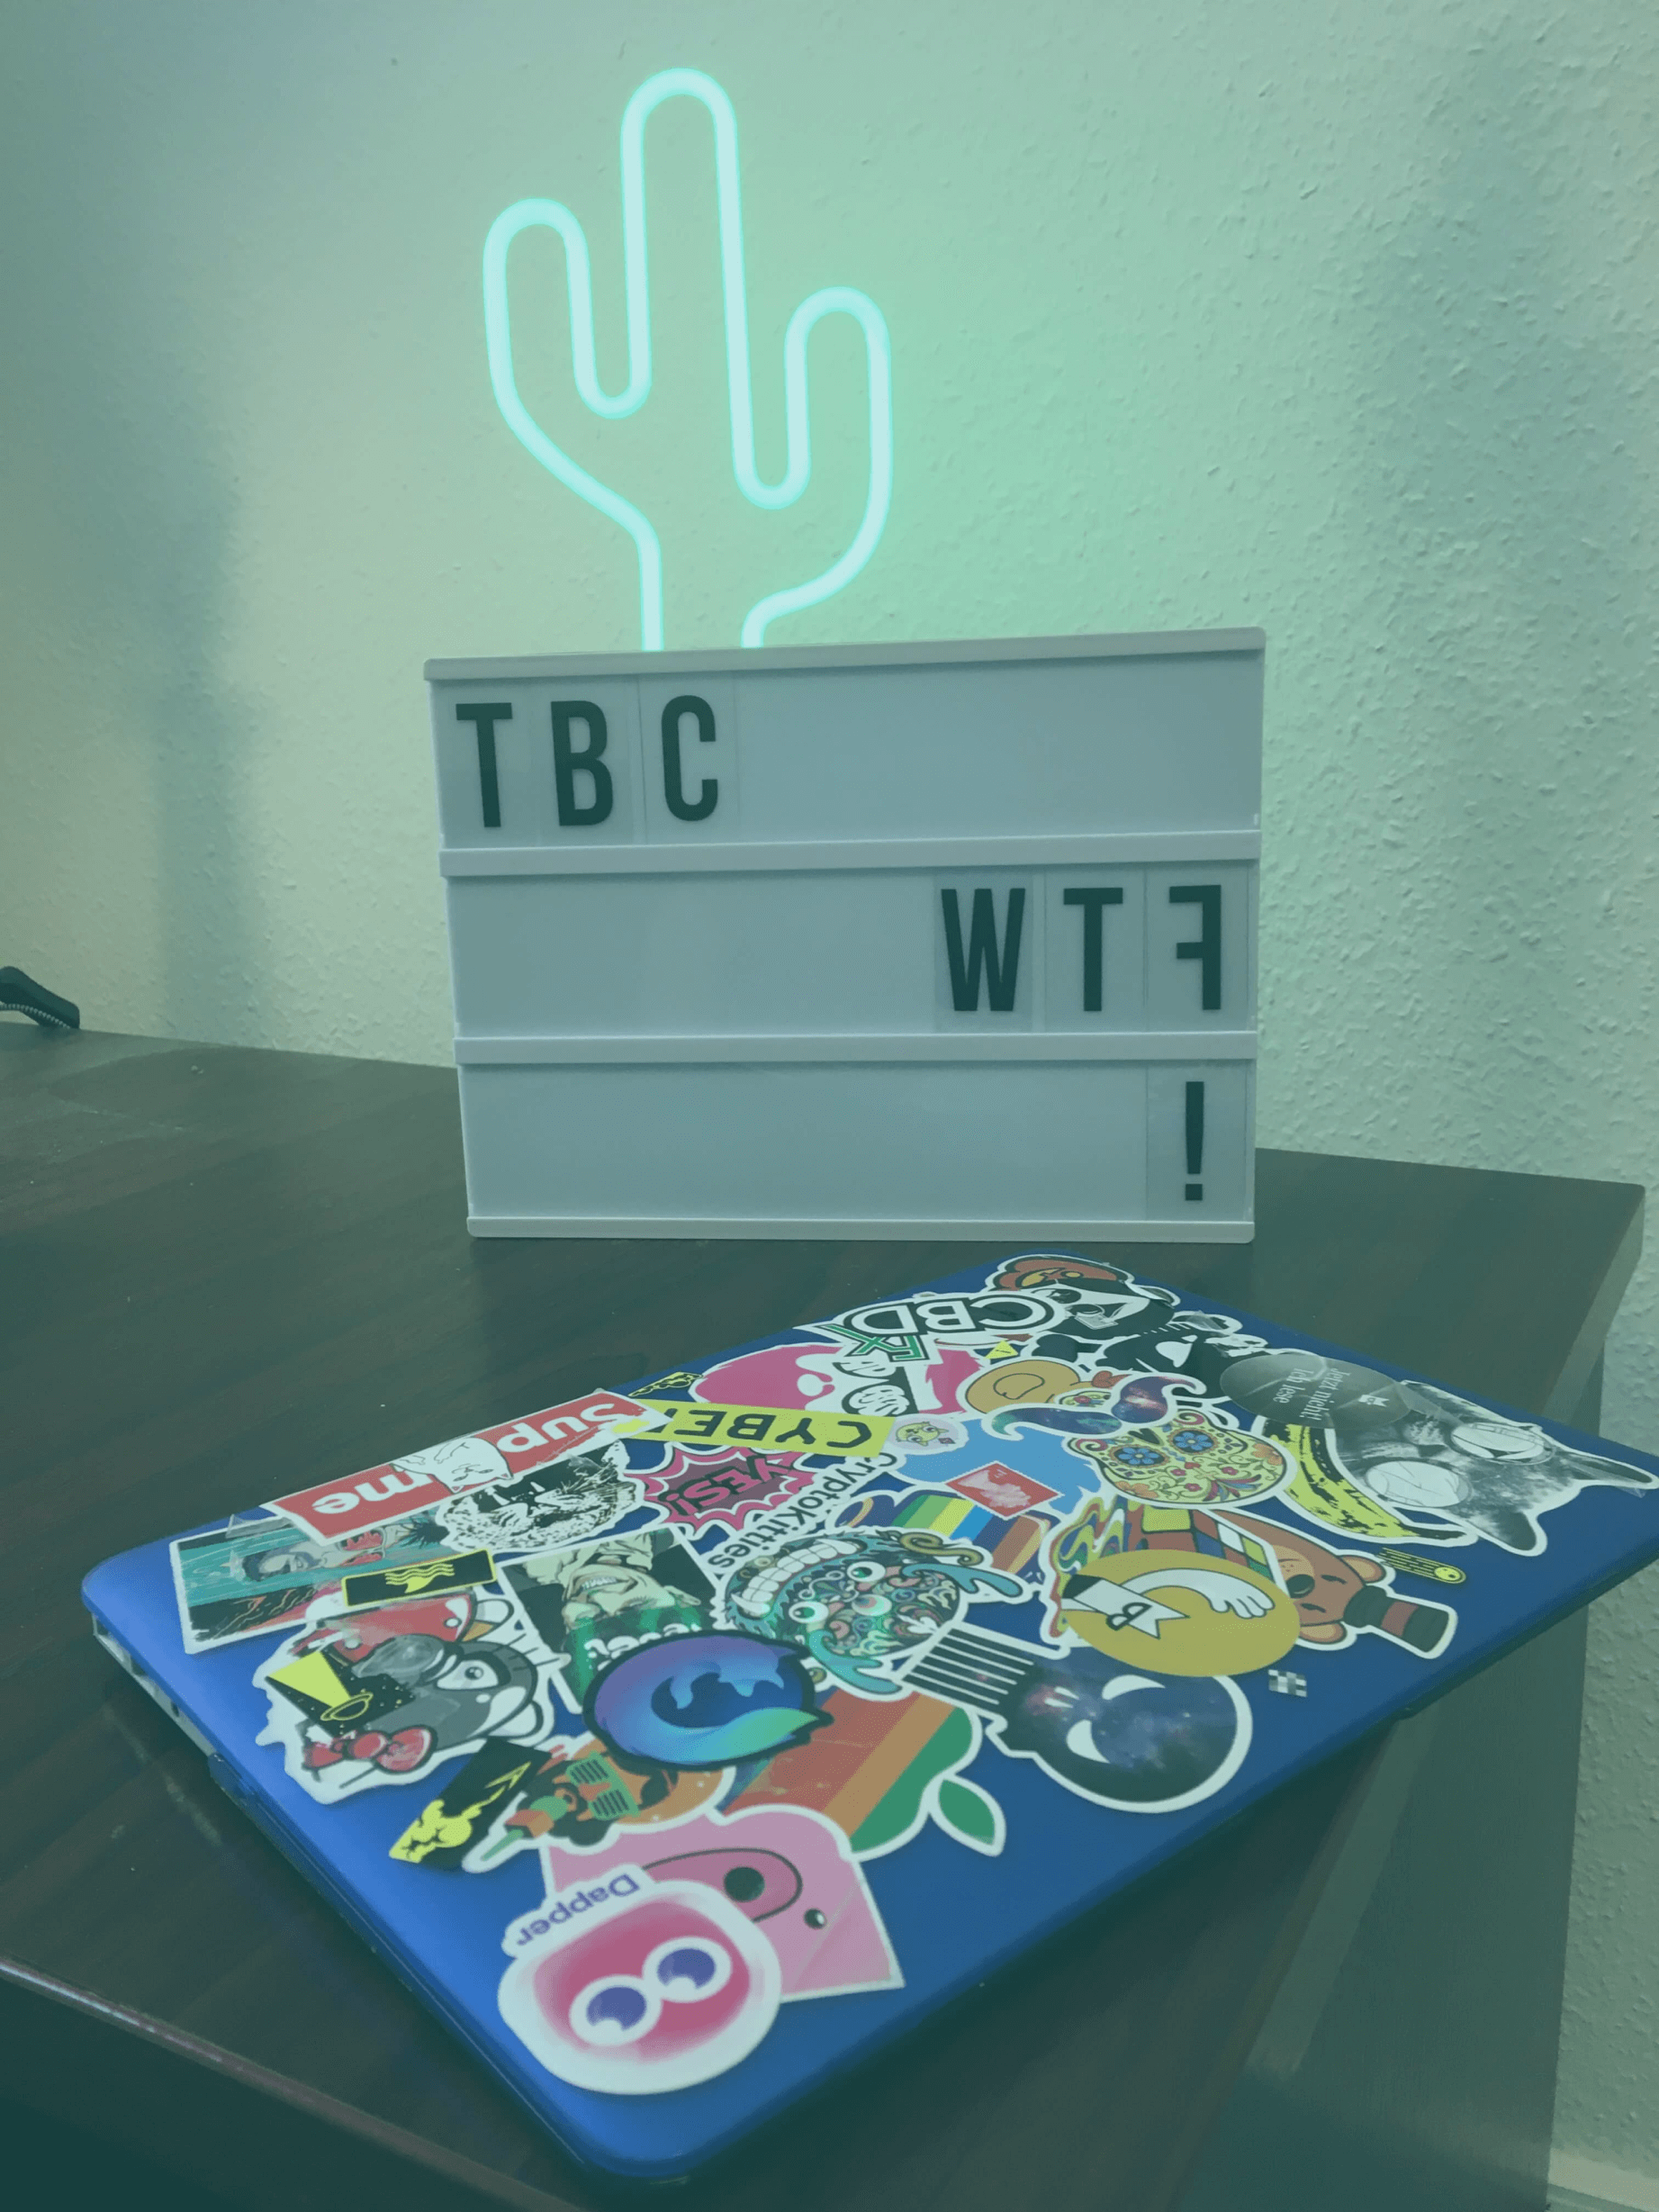 tbc.wtf - We create copy and content for established & challenger tech brands, savvy startups & bold B2B brands. Web copy, blog posts, social media, video scripts, pitch decks, press releases, whitepapers, and more!